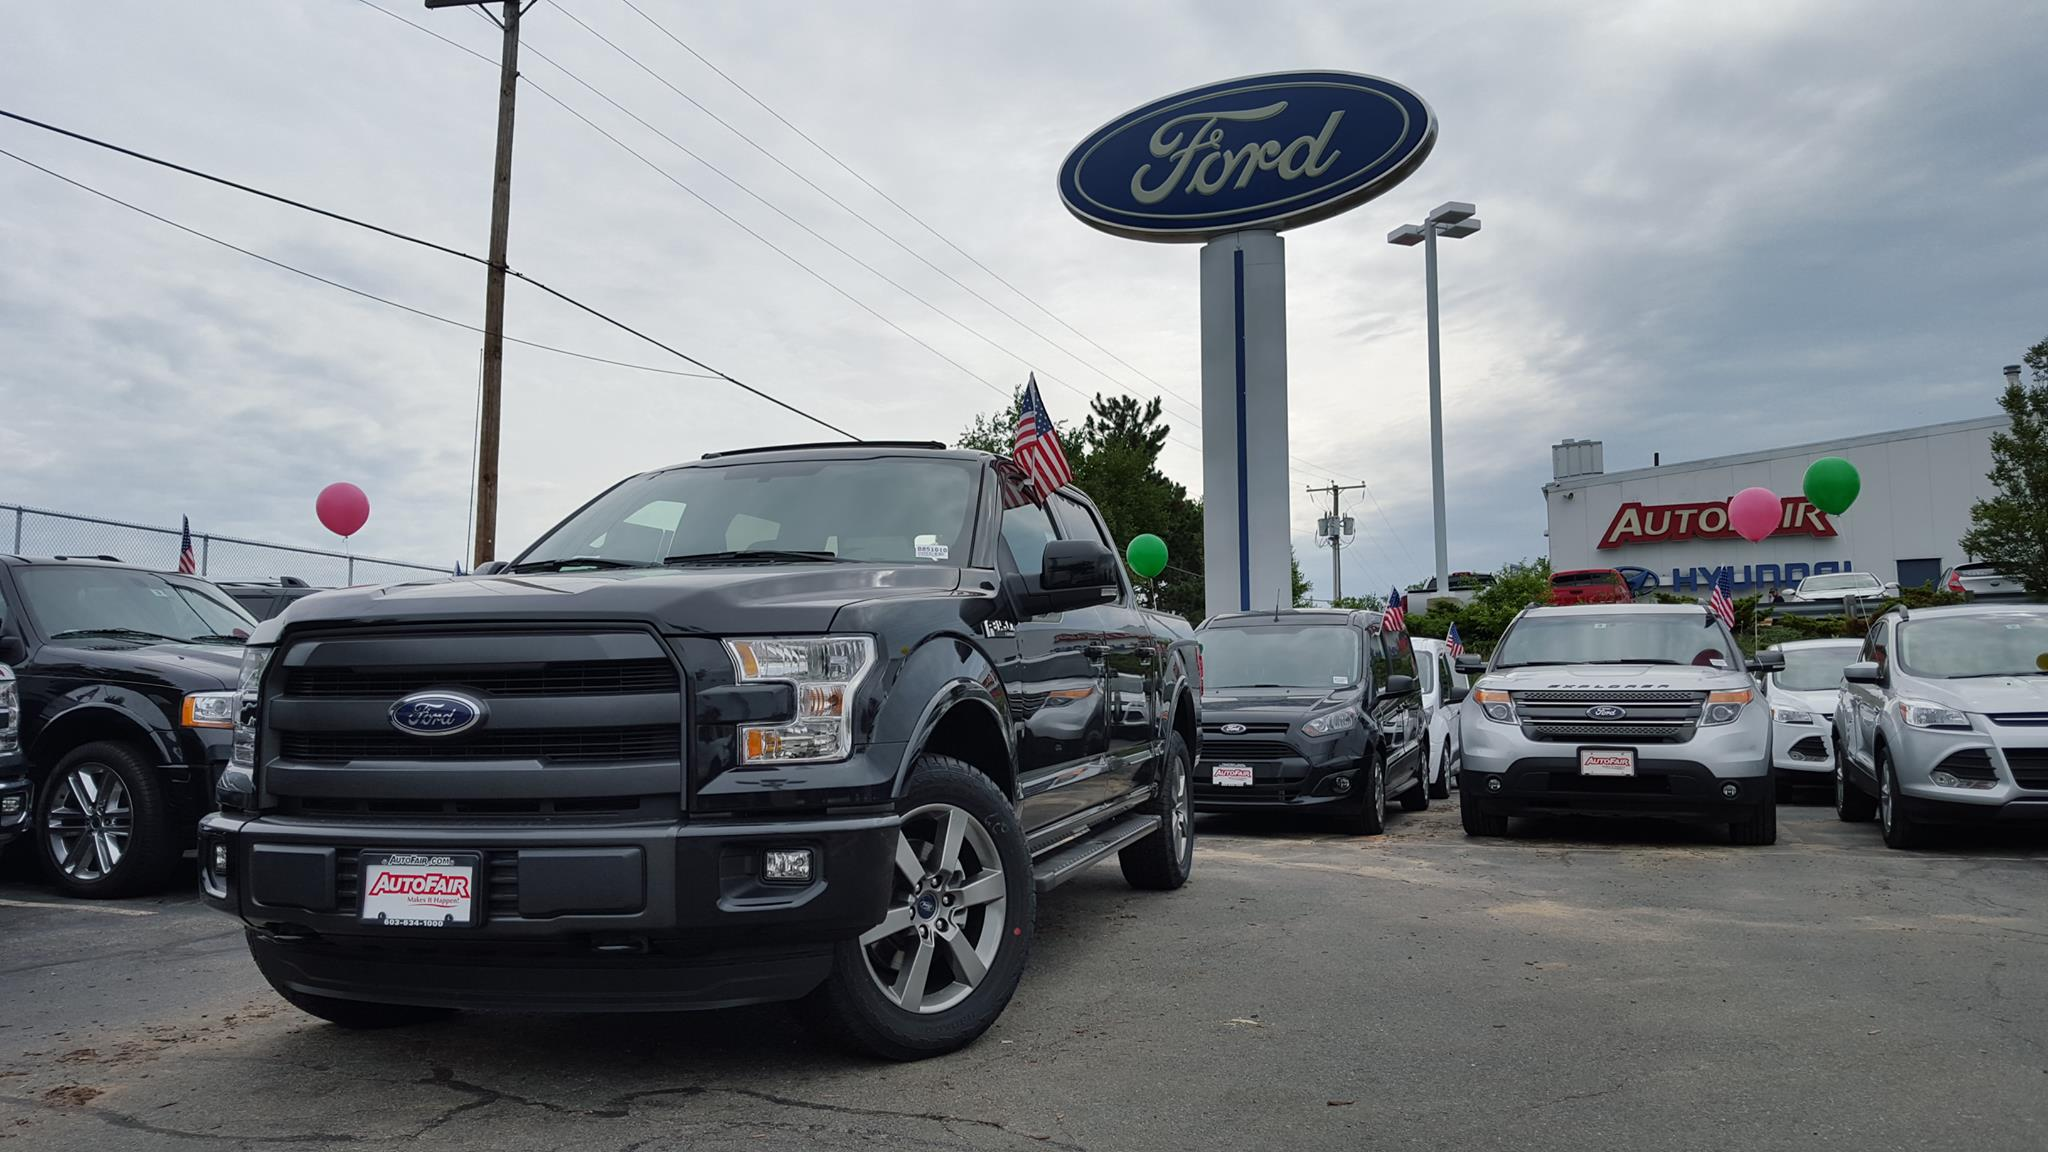 Ford Of Londonderry New And Used Ford Dealership Serving